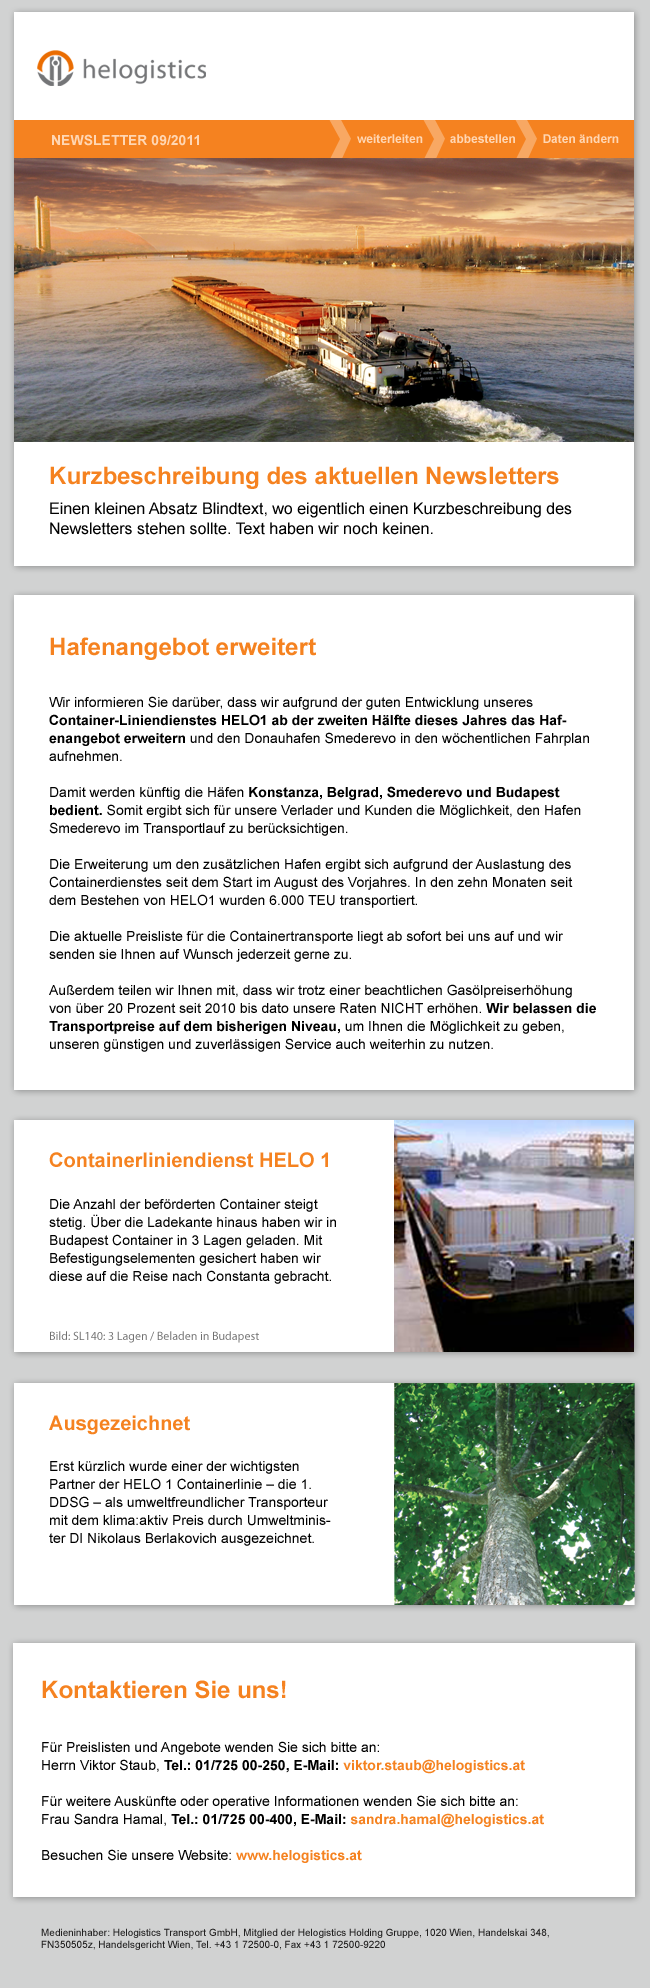 helogistics-newsletter